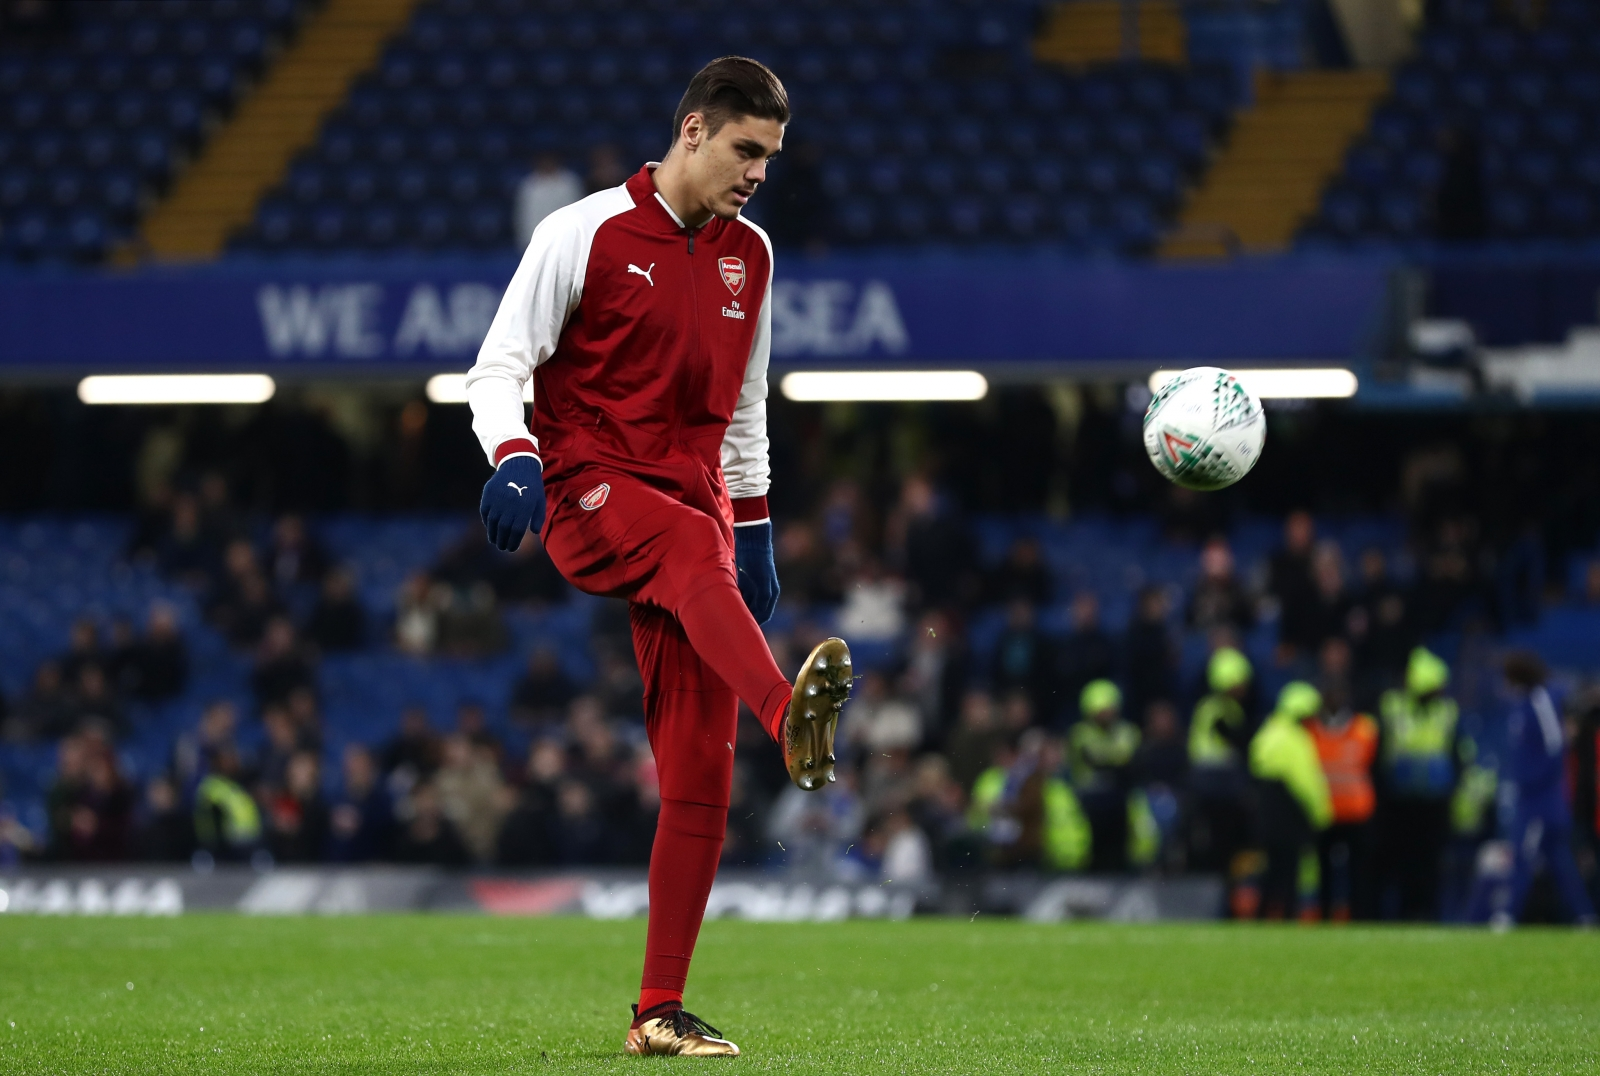 Wenger confirms U-turn over Arsenal defender Mavropanos